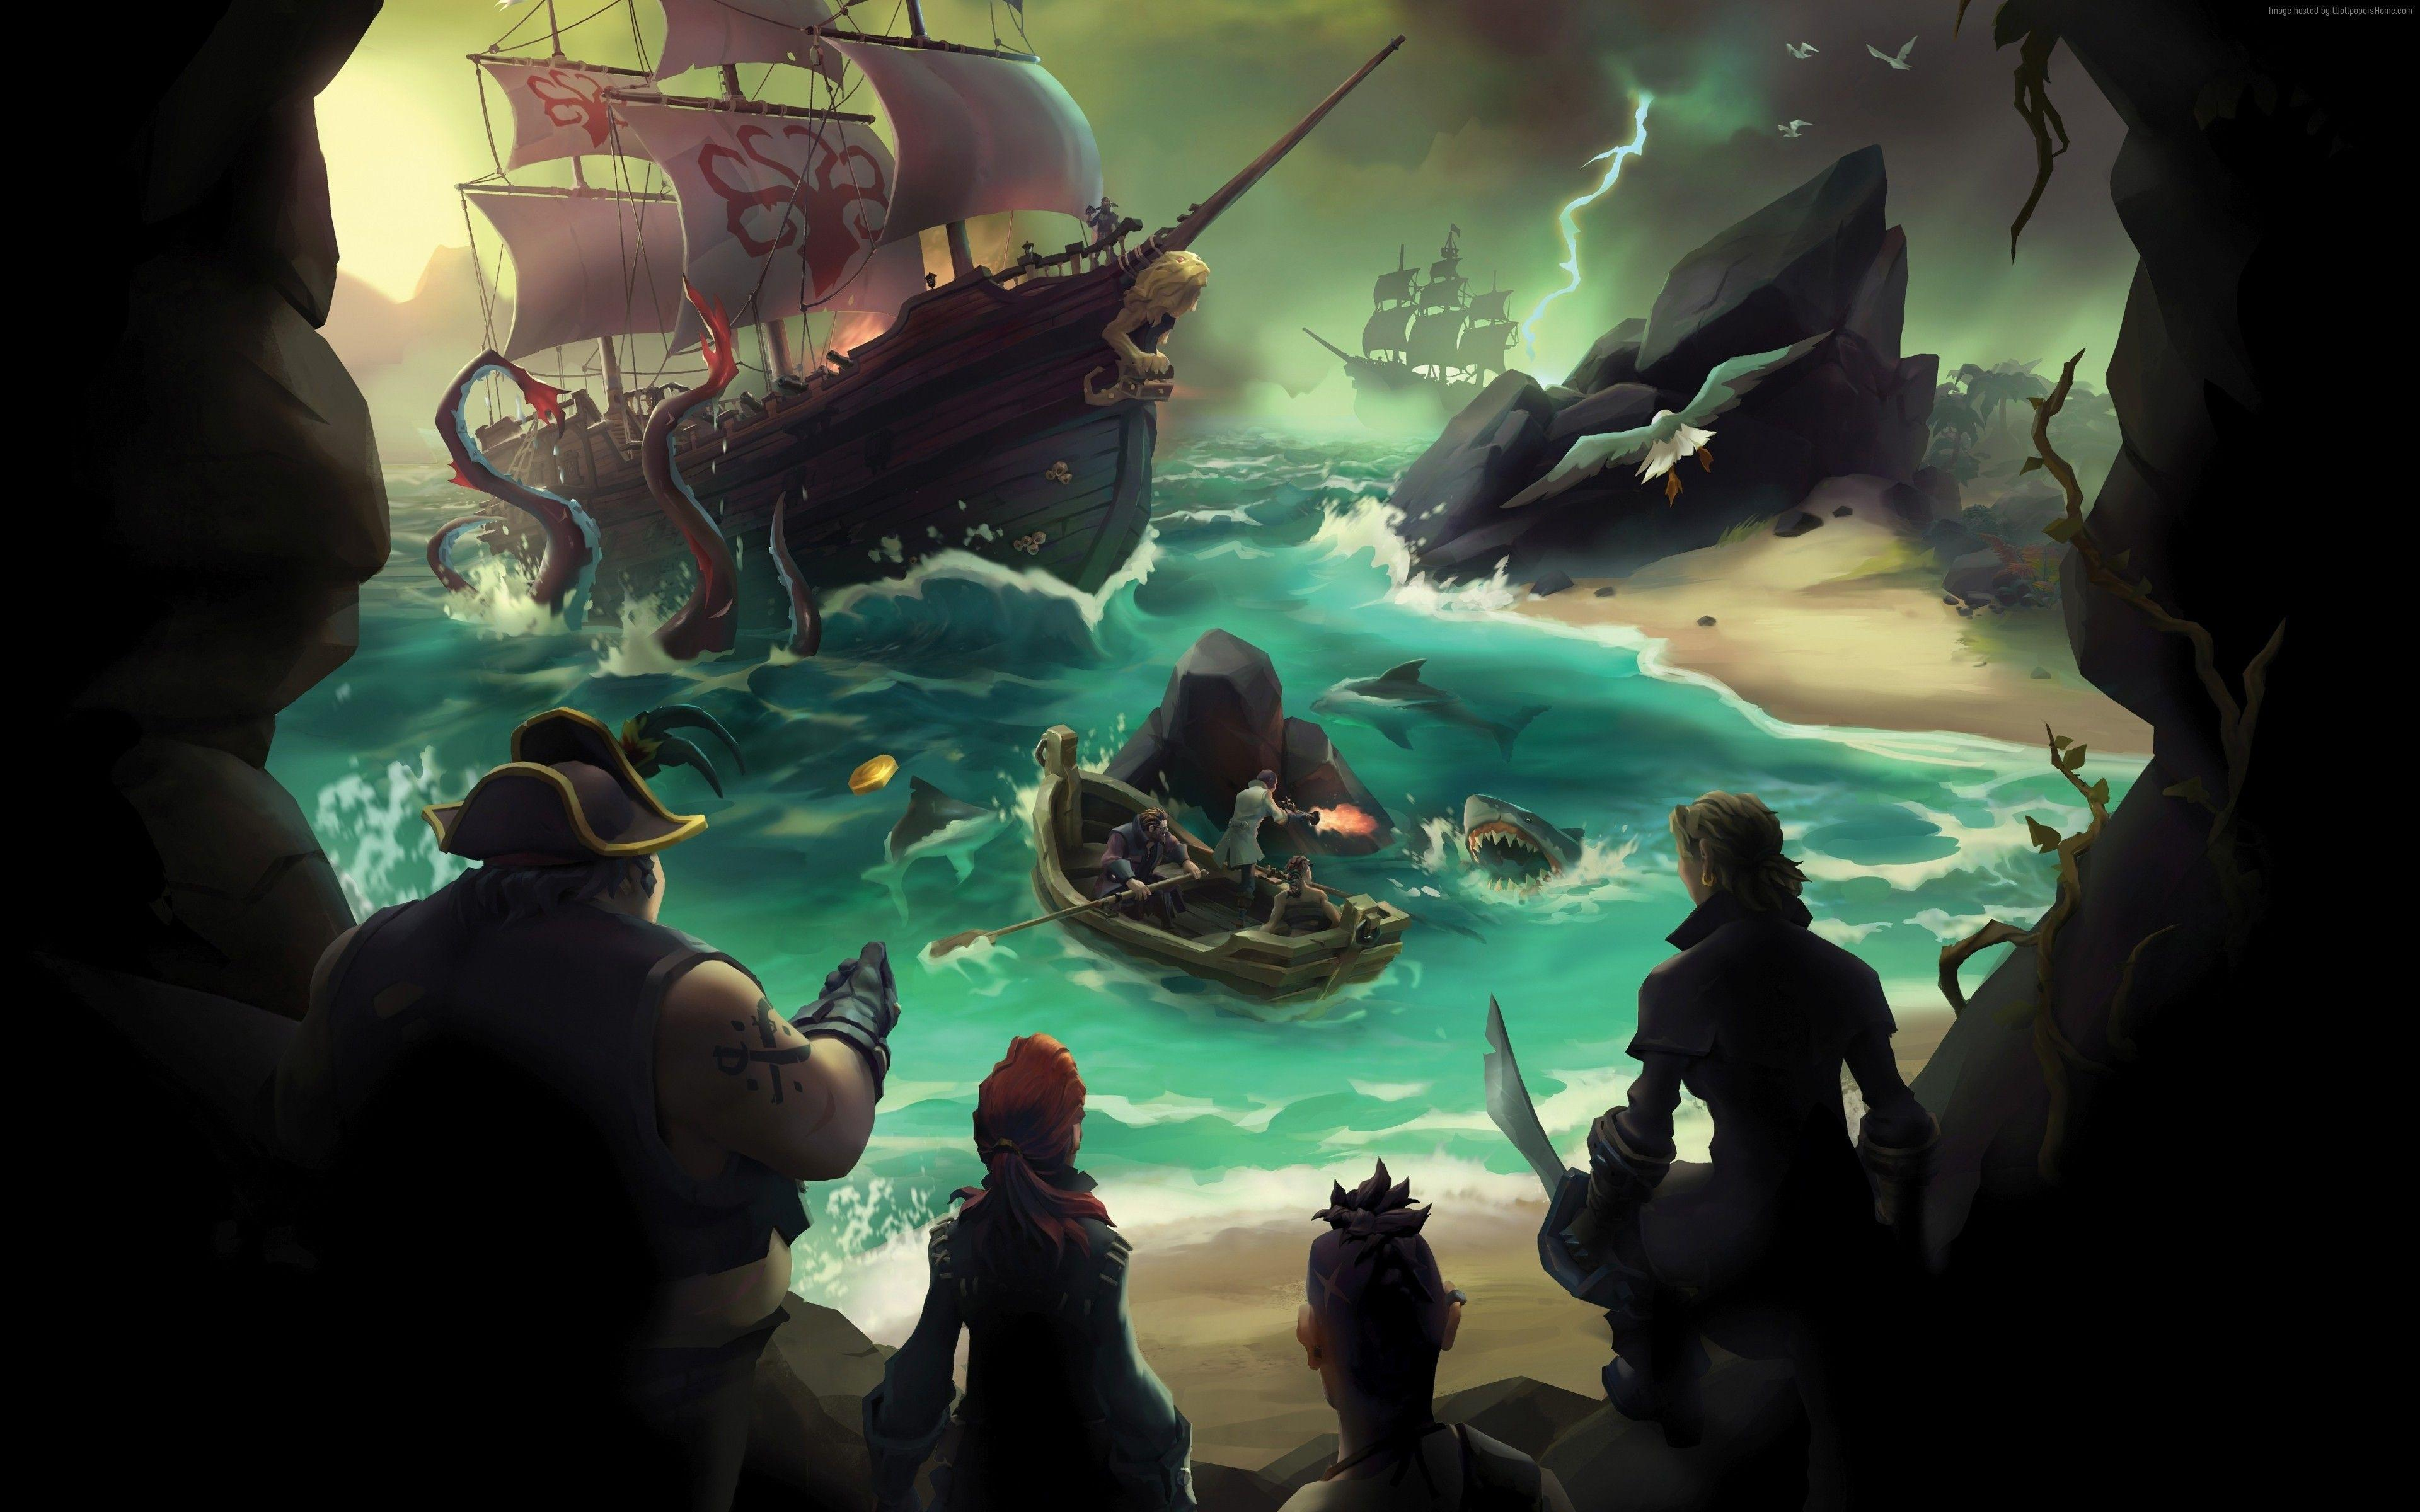 Sea Of Thieves Wallpapers - Wallpaper Cave